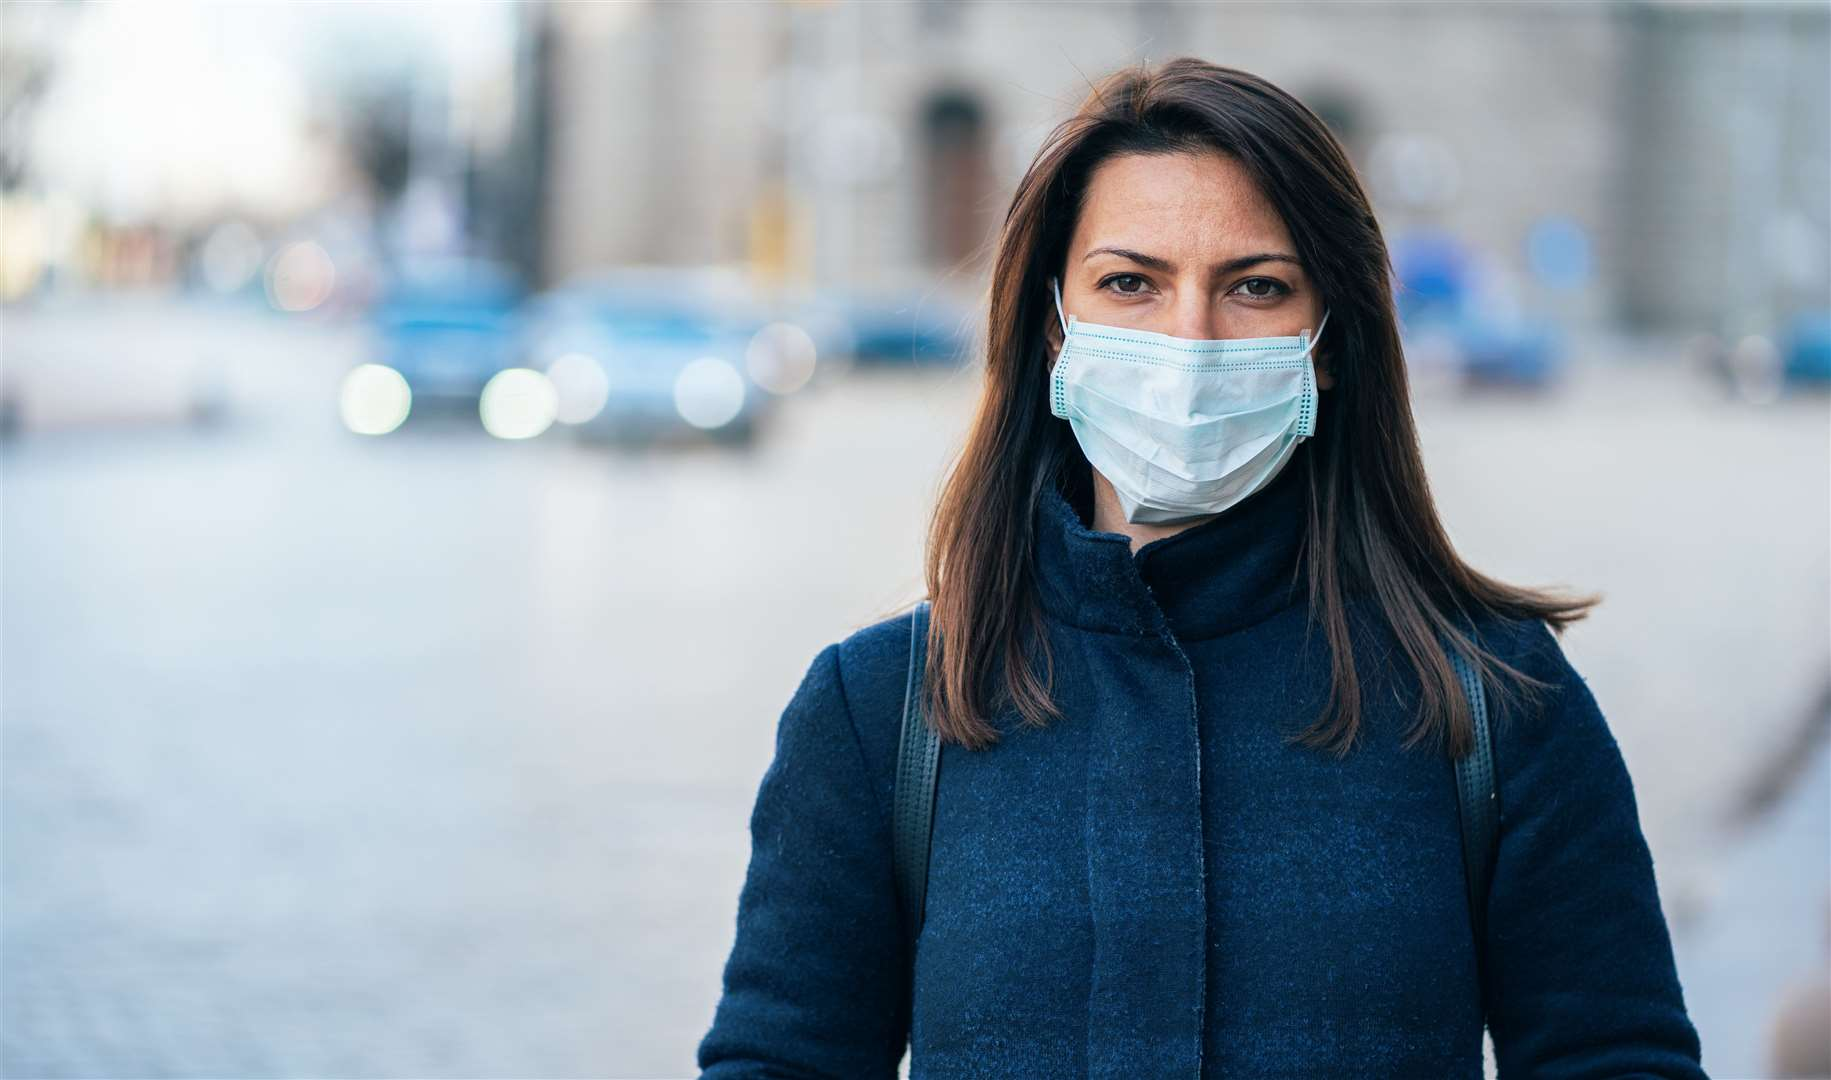 The Government is still encouraging people to wear face masks in crowded areas